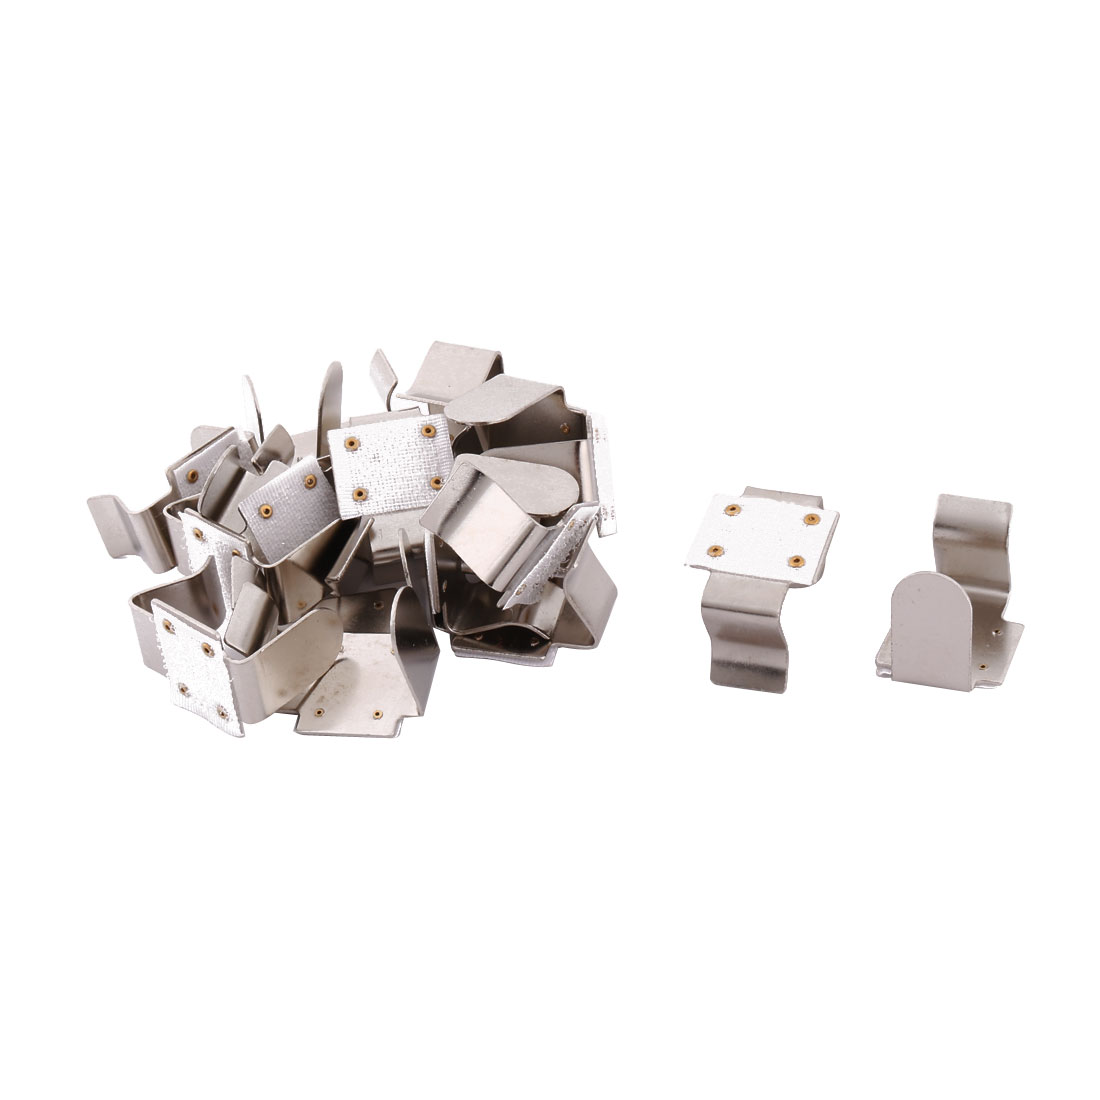 Restaurant Metal Tablecloth Fastener Clips Clamps Cover Holder Silver Tone 16pcs